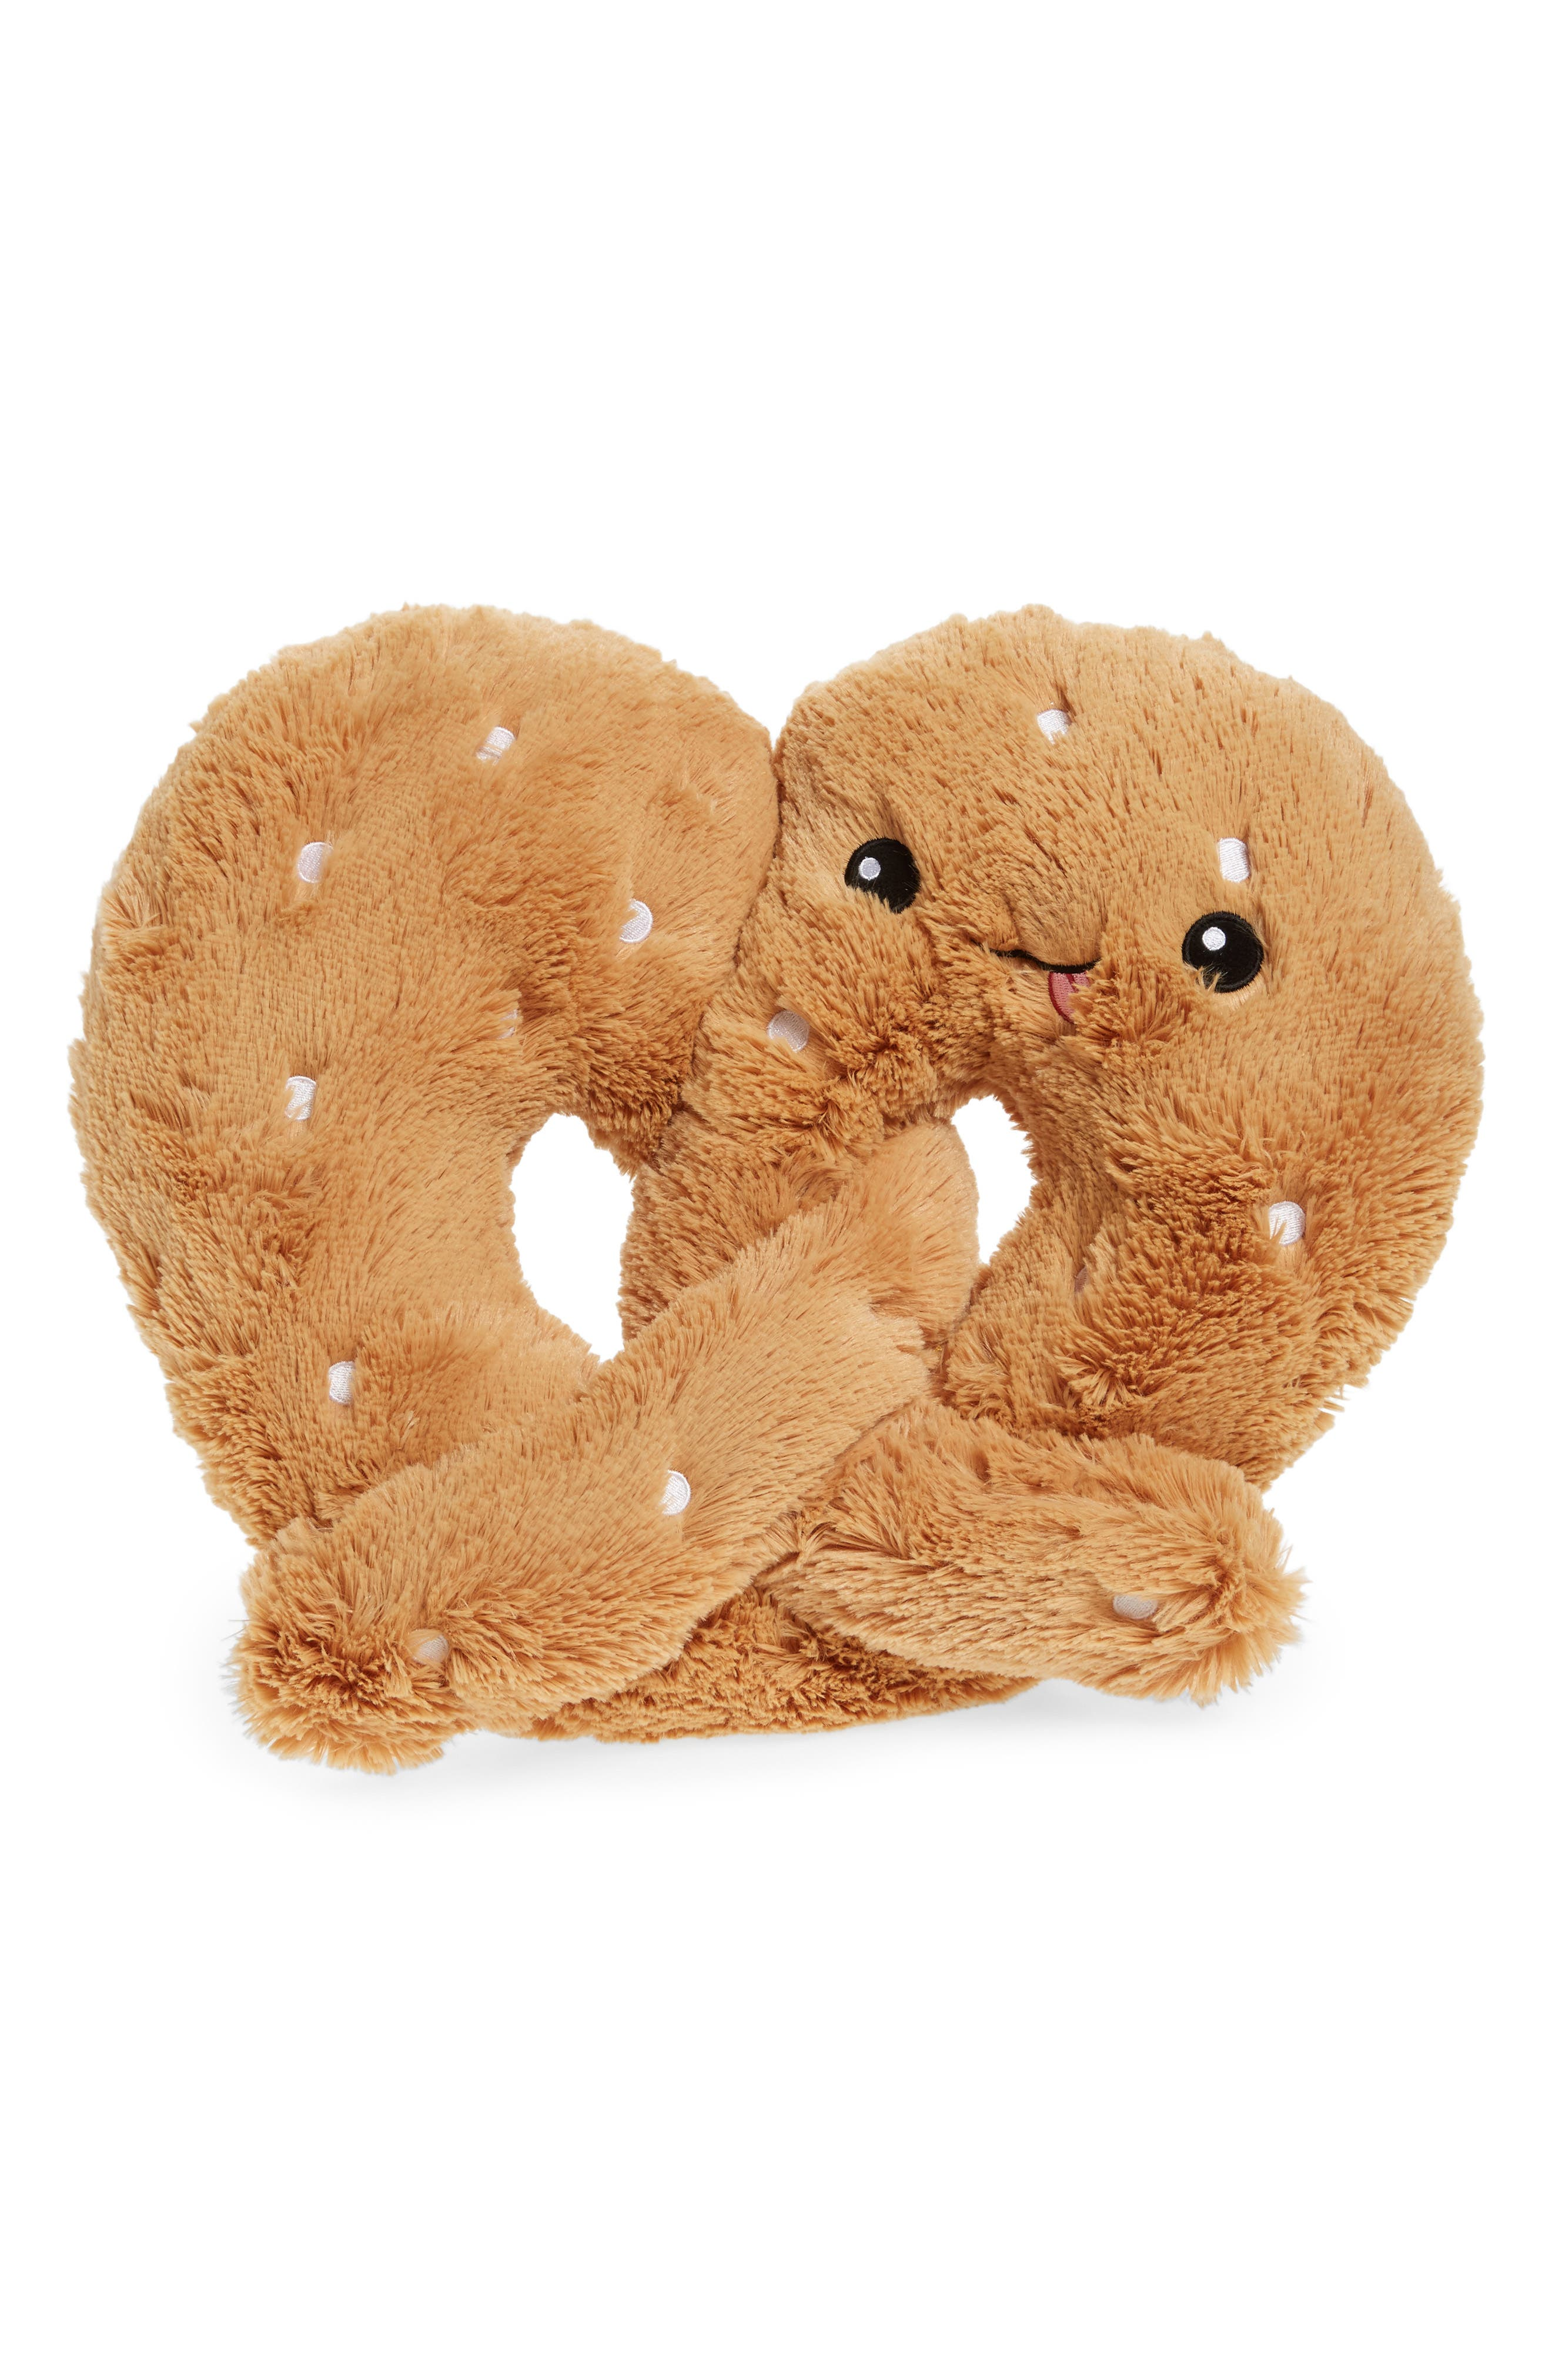 Squishable Pretzel Stuffed Toy